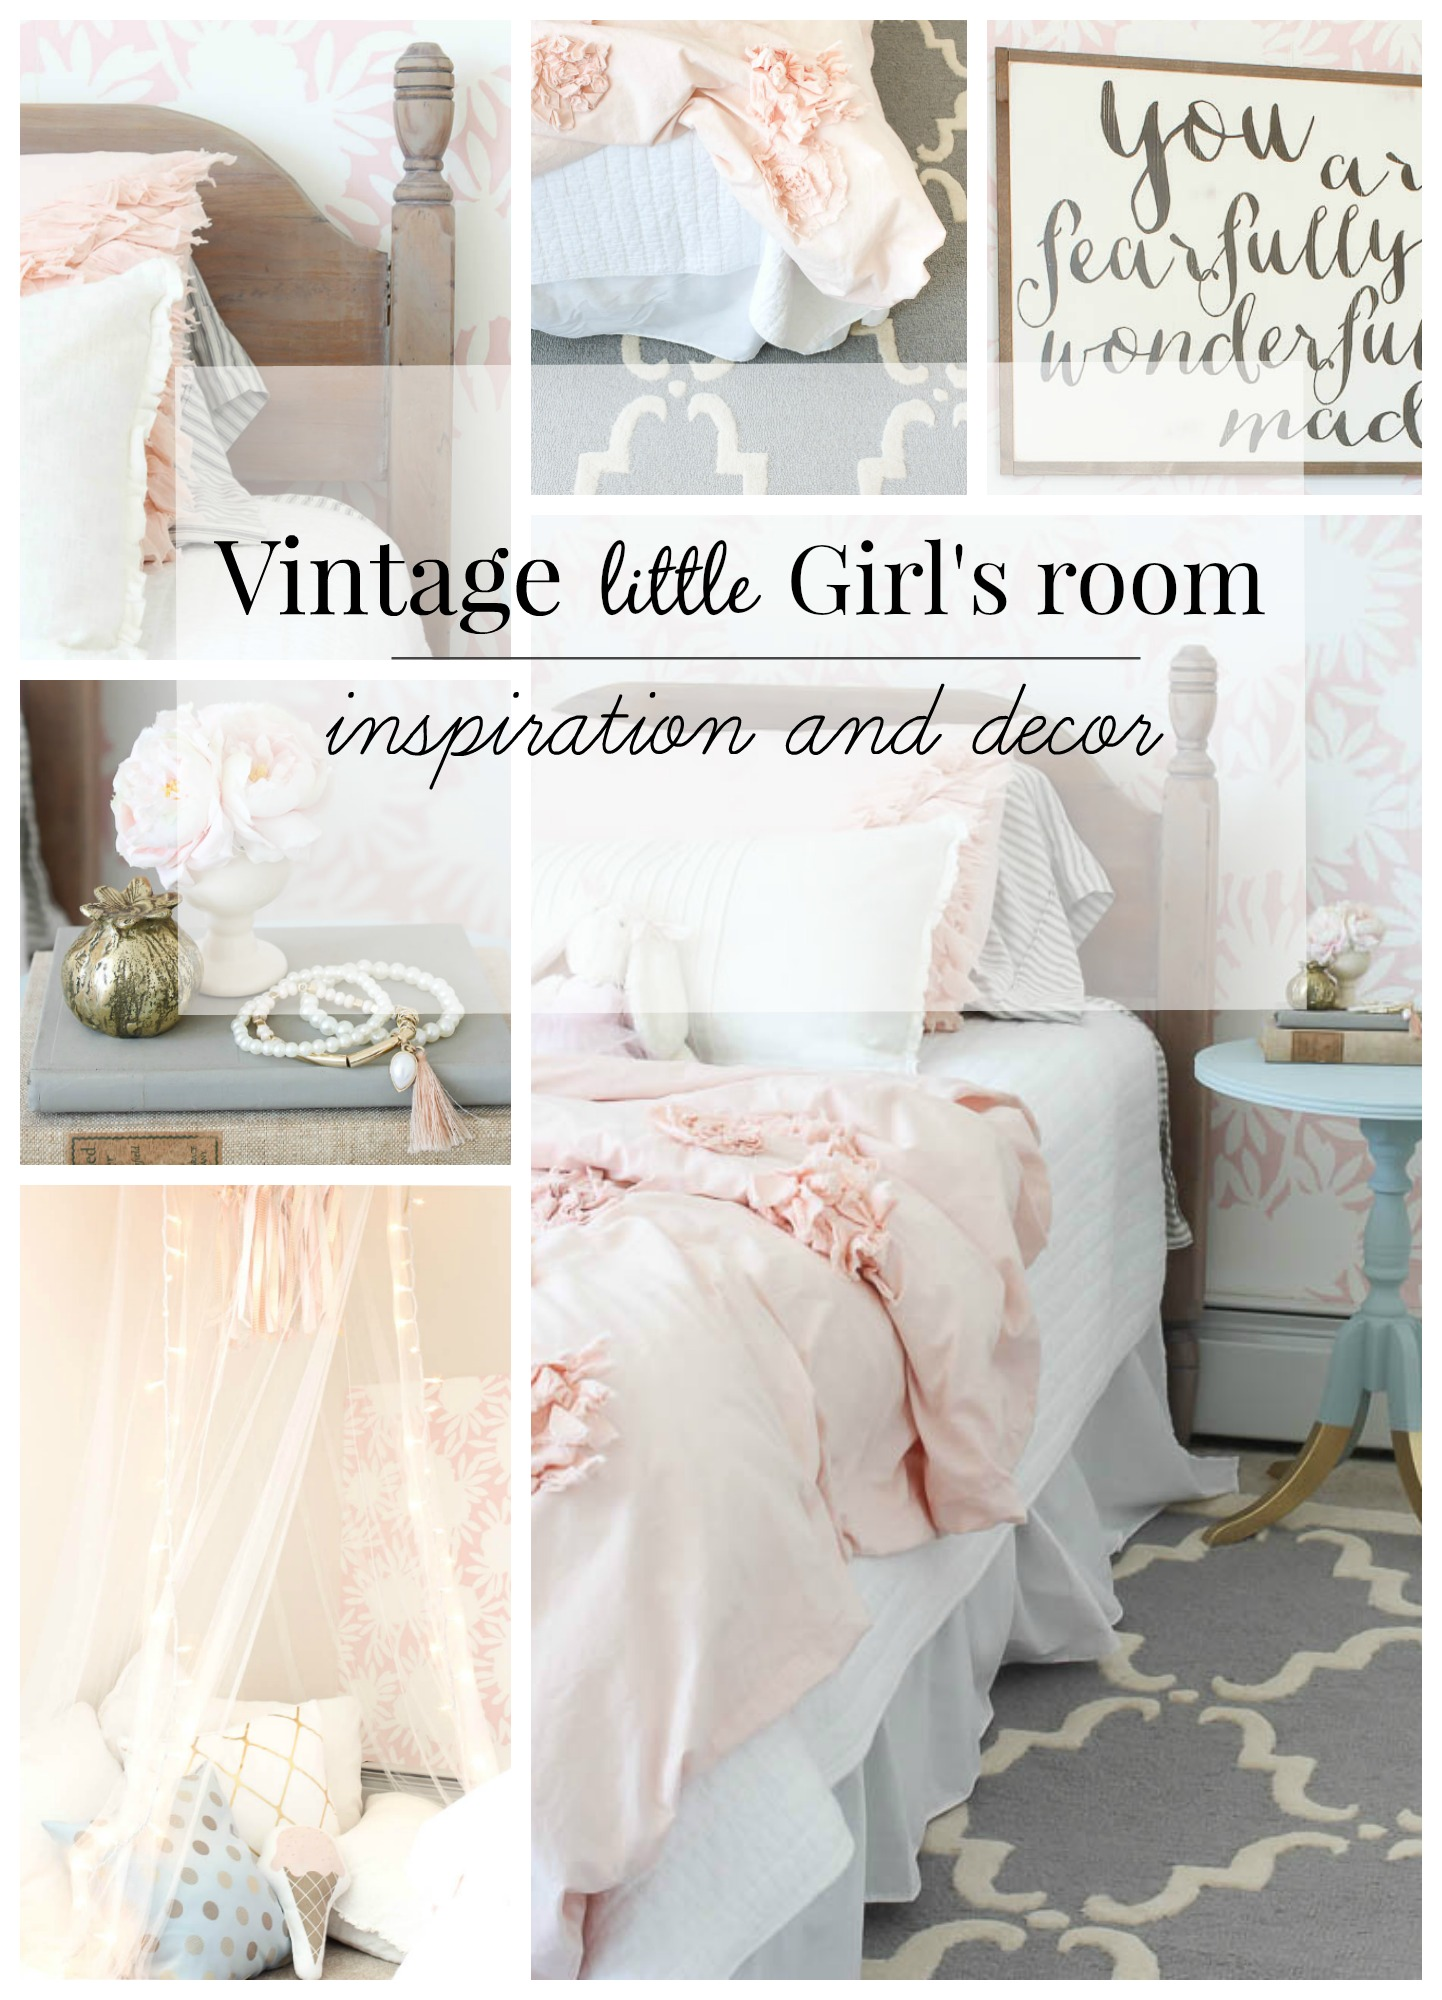 Girls Room: Vintage Little Girls Room Reveal